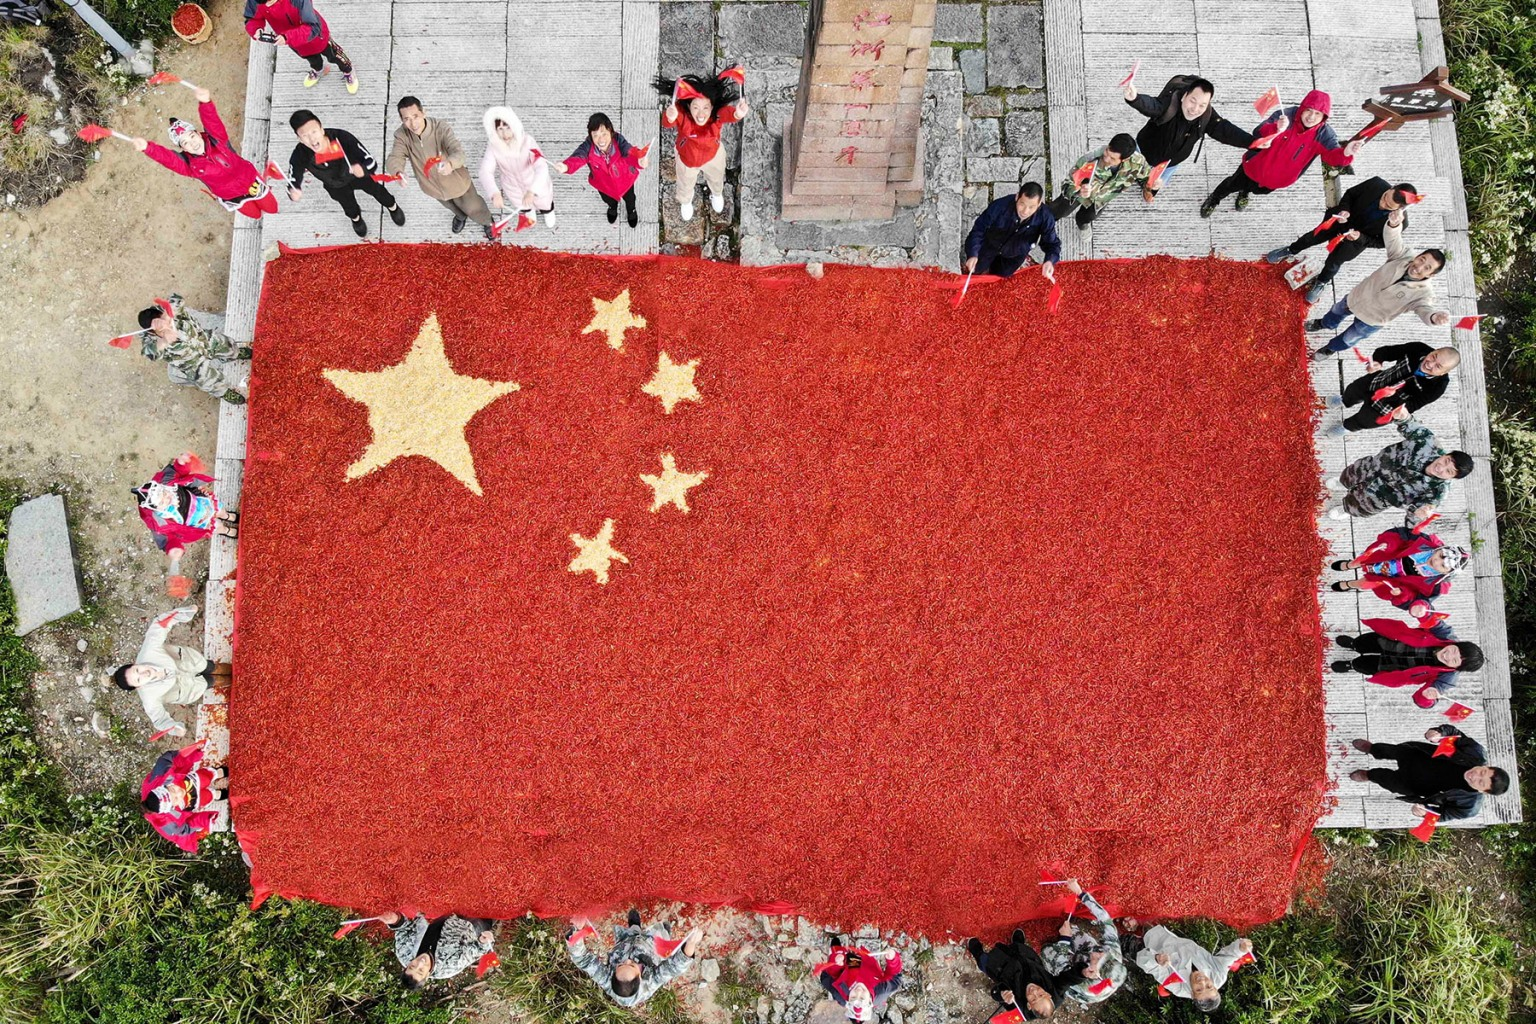 Farmers pose with a Chinese national flag made from chilli peppers and corn on Longquan mountain in Lishui in China's eastern Zhejiang province on Sept. 26. Farmers made the flag to mark the upcoming National Day. -/AFP/Getty Images